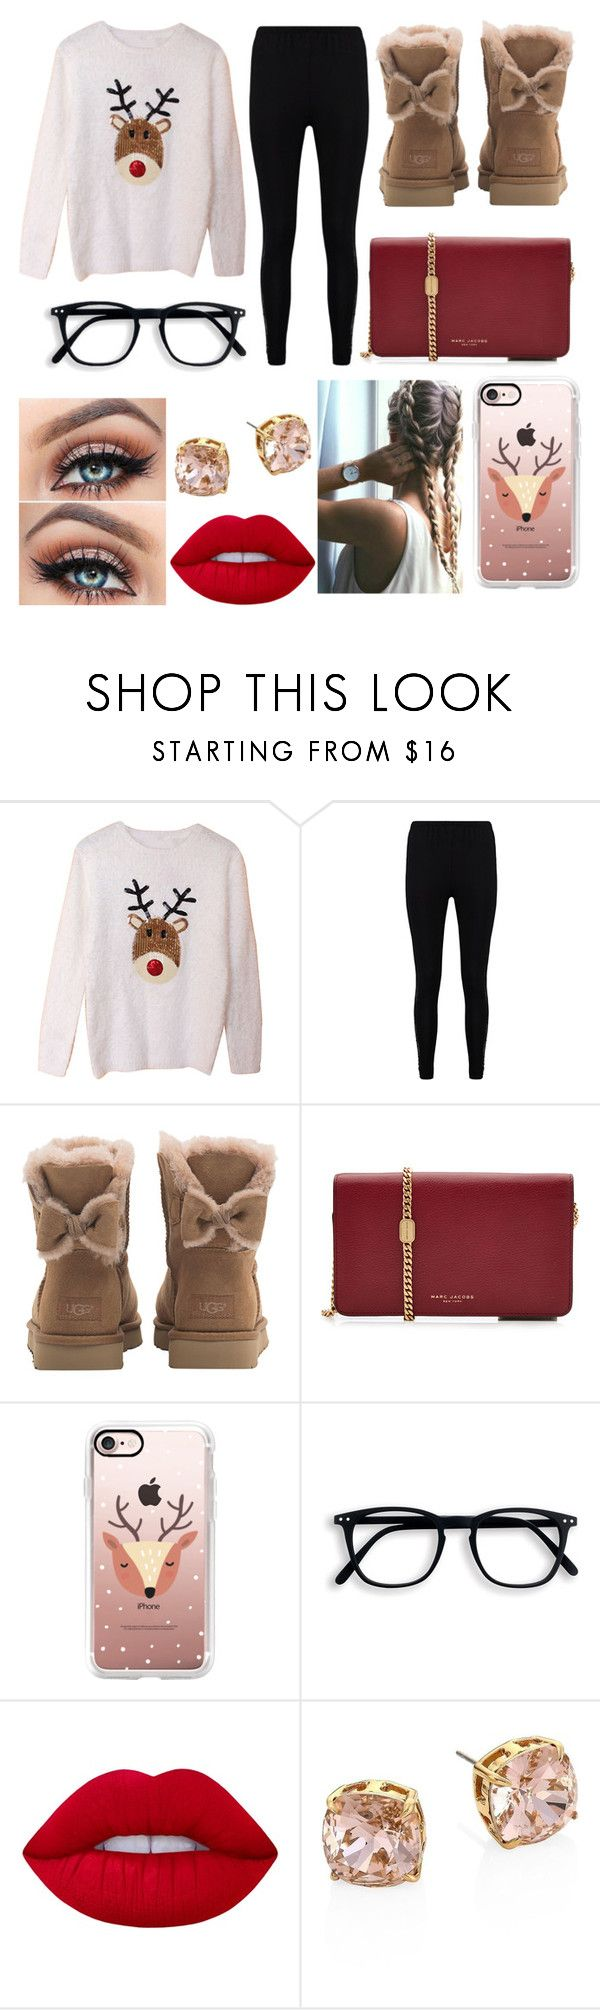 """Rudolph The Red Nose Reindeer😍😍❤️"" by queen71304 ❤ liked on Polyvore featuring Boohoo, UGG, Marc Jacobs, Casetify, Lime Crime and Tory Burch"